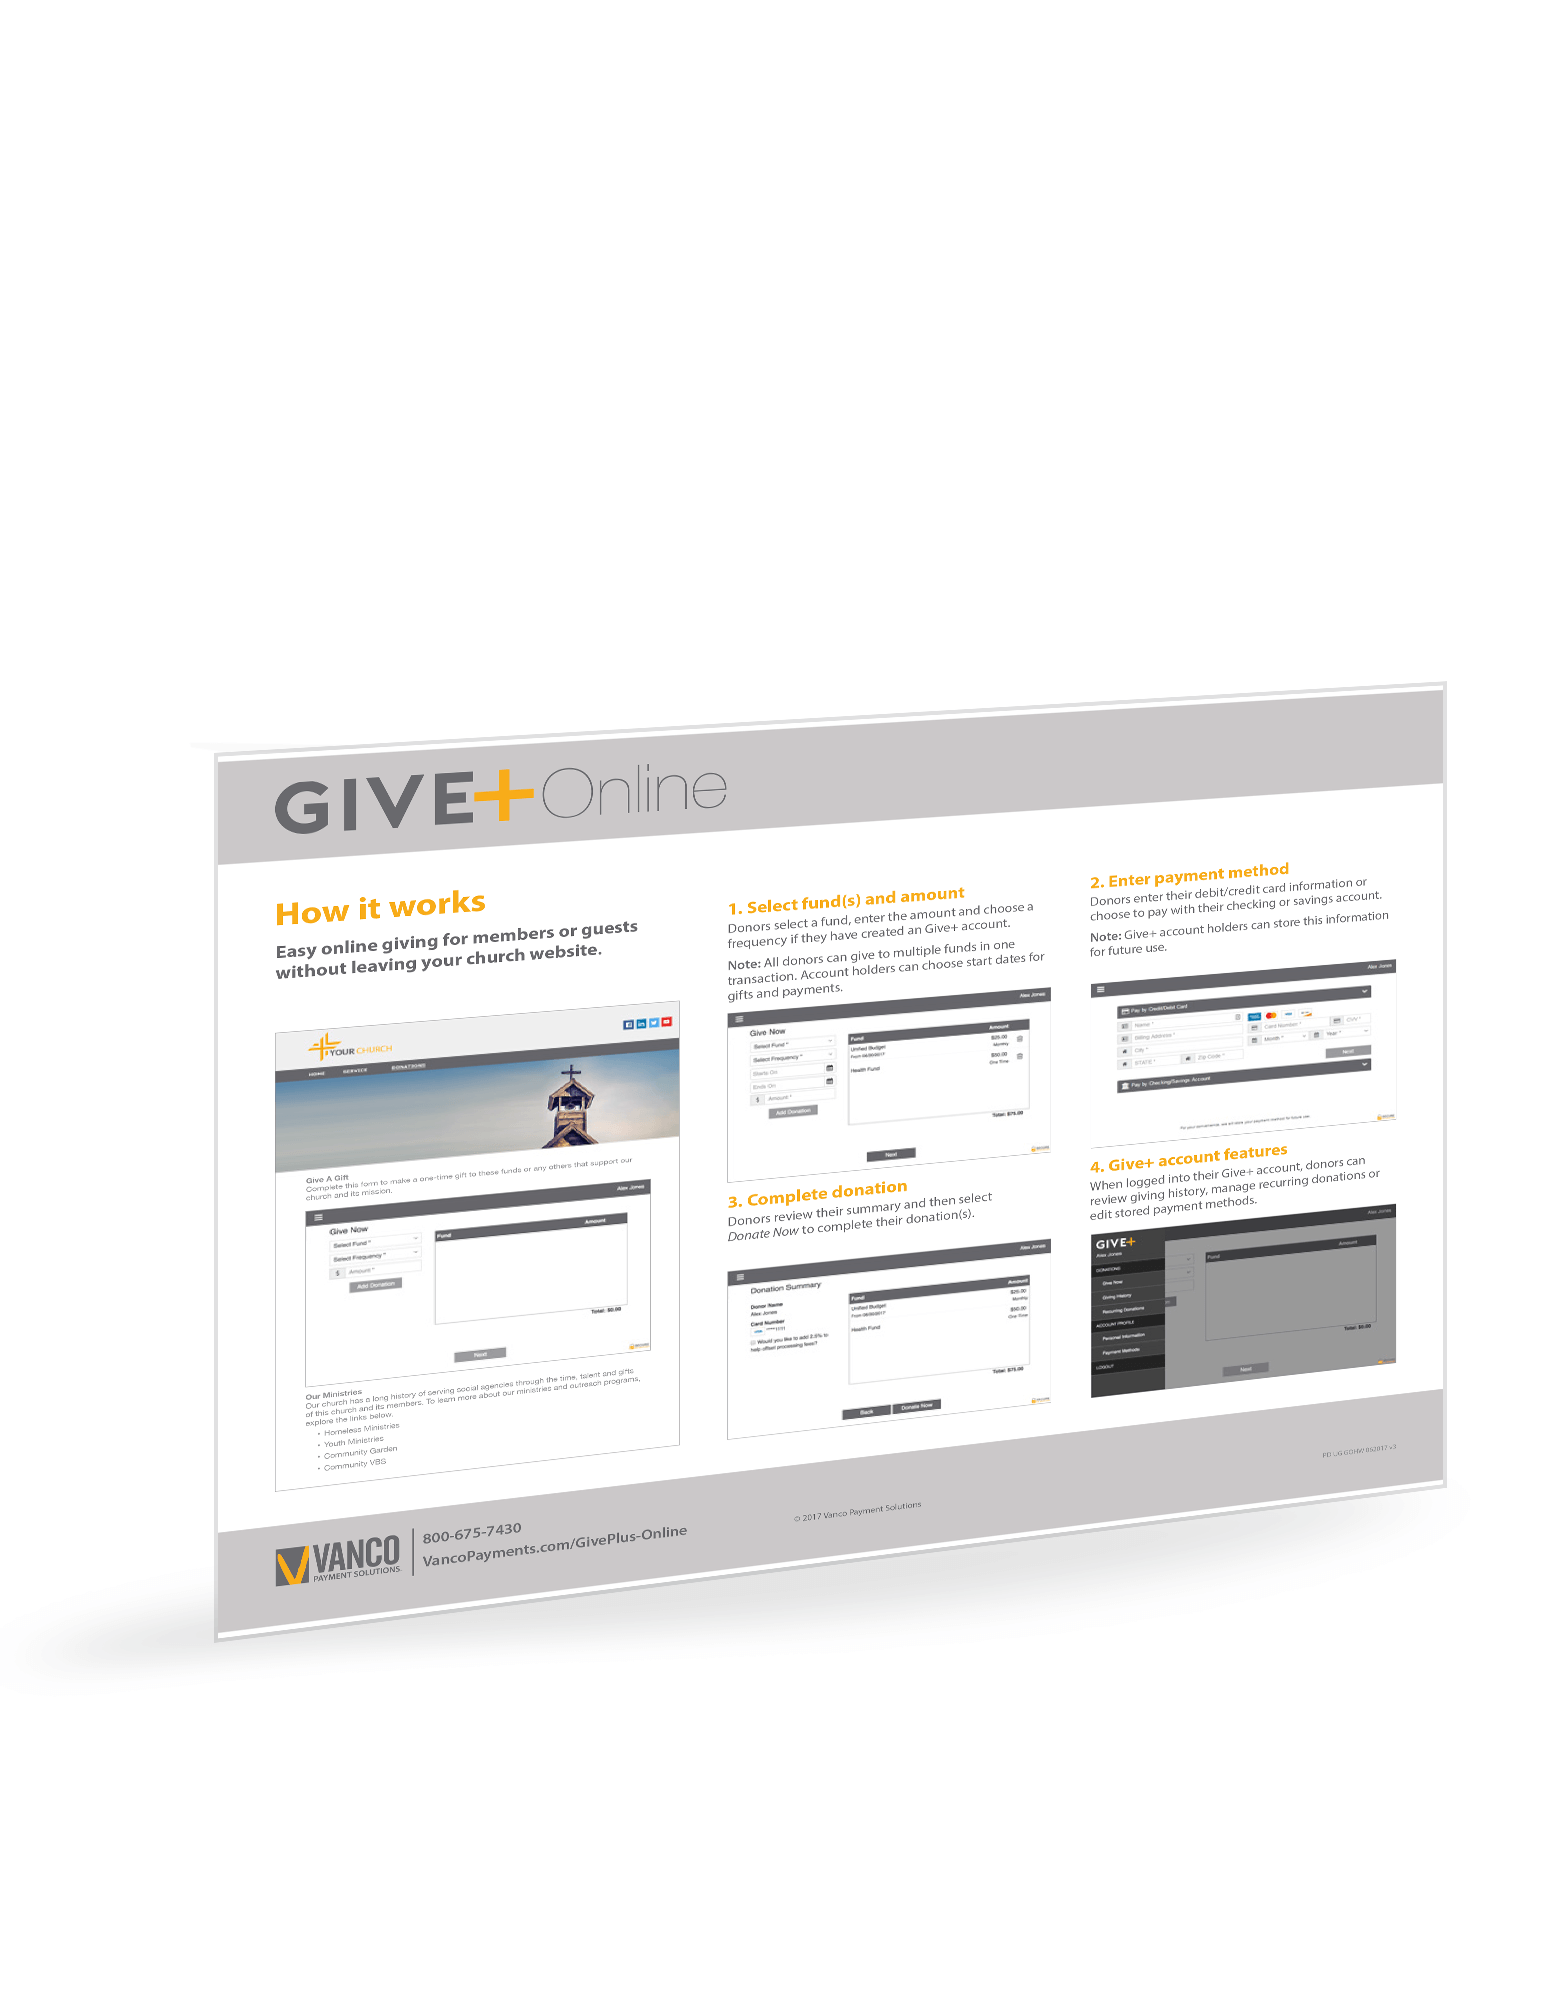 Vanco_GivePlus_Online_Embed_How_it_Works_thumb.jpg